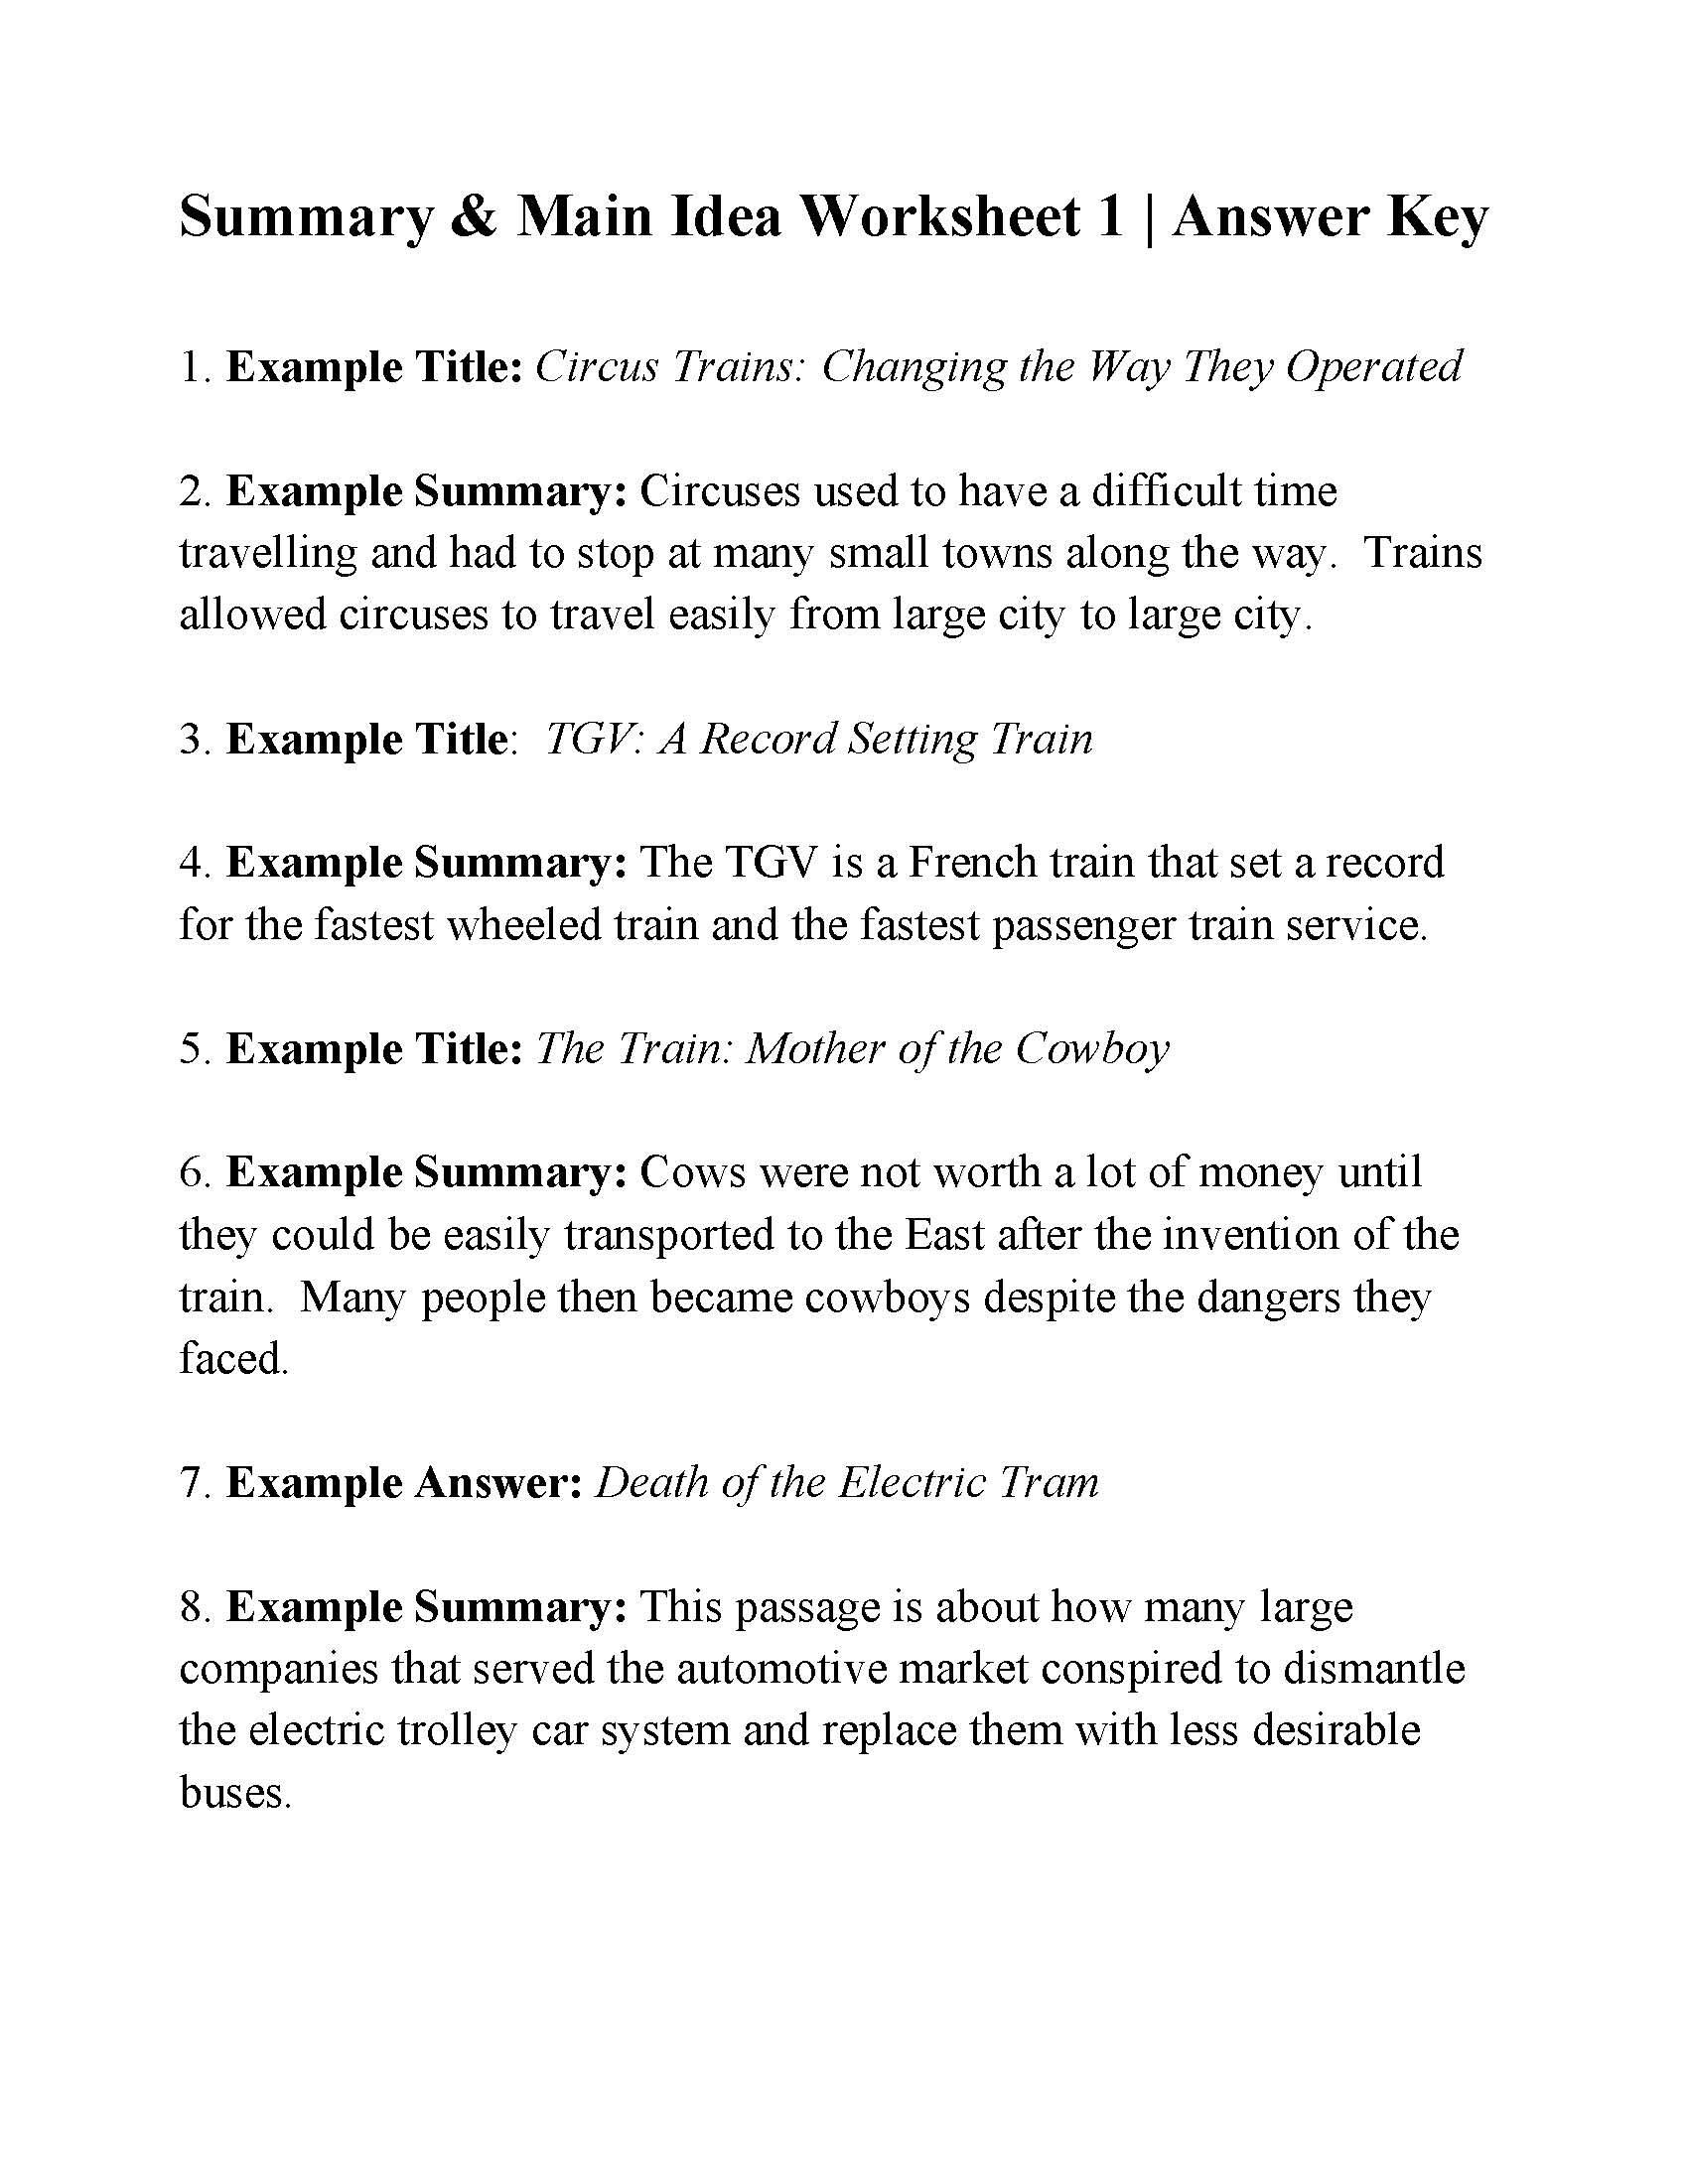 Main Idea Worksheets High School This is the Answer Key for the Summary and Main Idea